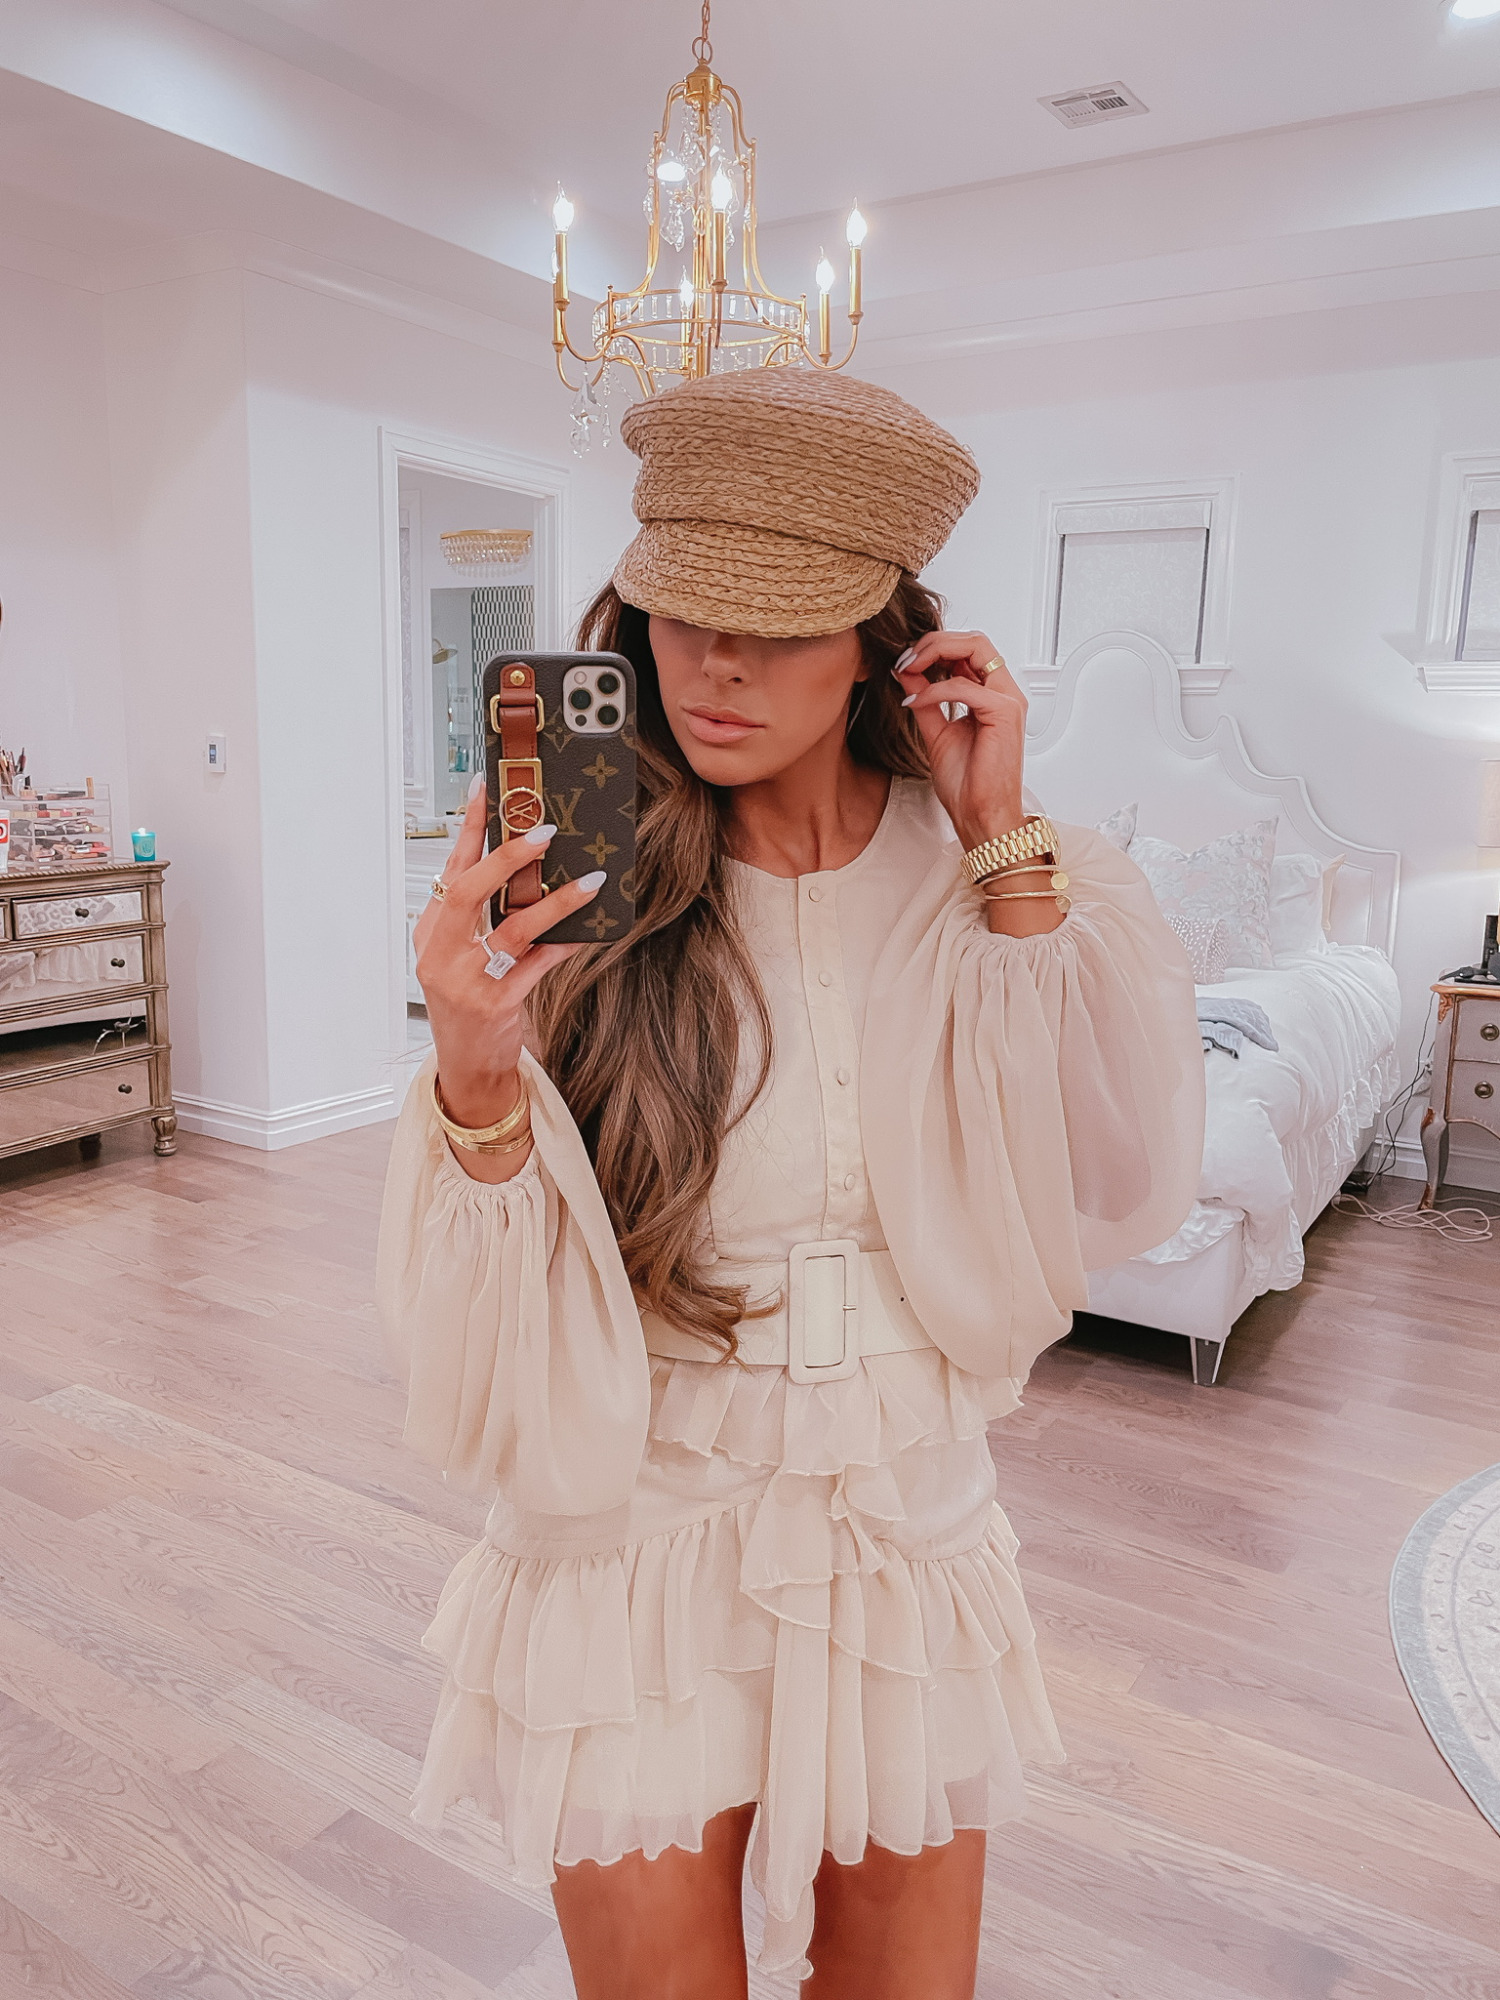 Ruffle Dress, Spring Dress, Cream Dress, Long Sleeved Mini Dress, Belted Dress, Vici Collection, Try-On Haul, Emily Ann Gemma  VICI Fashion by popular US fashion blog, The Sweetest Thing: image of Emily Gemma wearing a VICI tan tiered ruffle skirt belted dress with a straw hat.